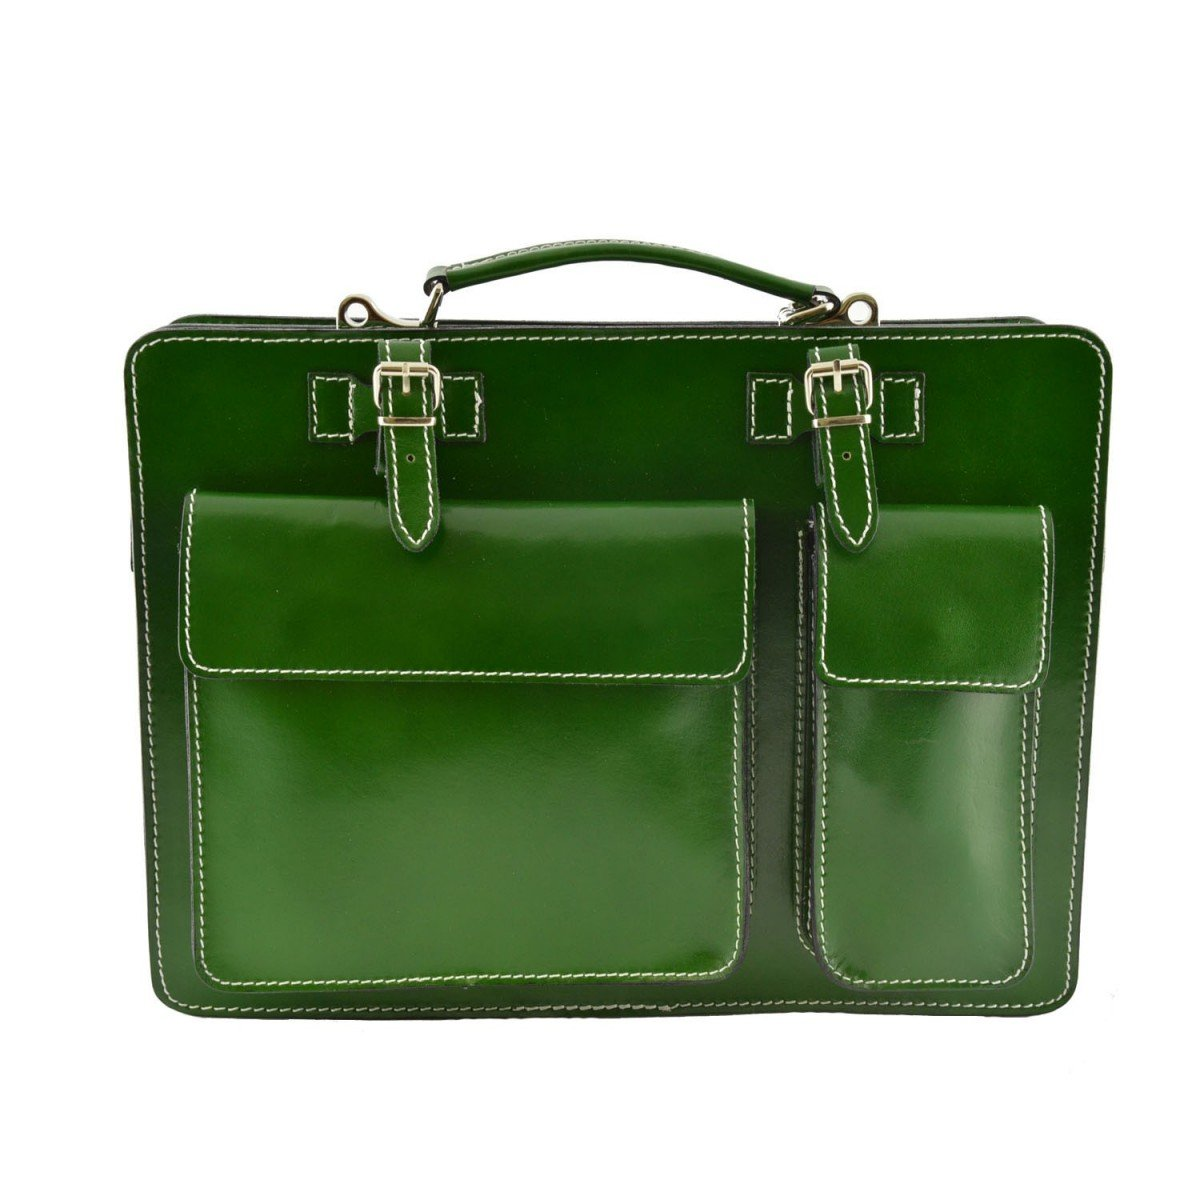 Made In Italy Leather Briefcase Color Green - Business Bag   B014T6IPPW